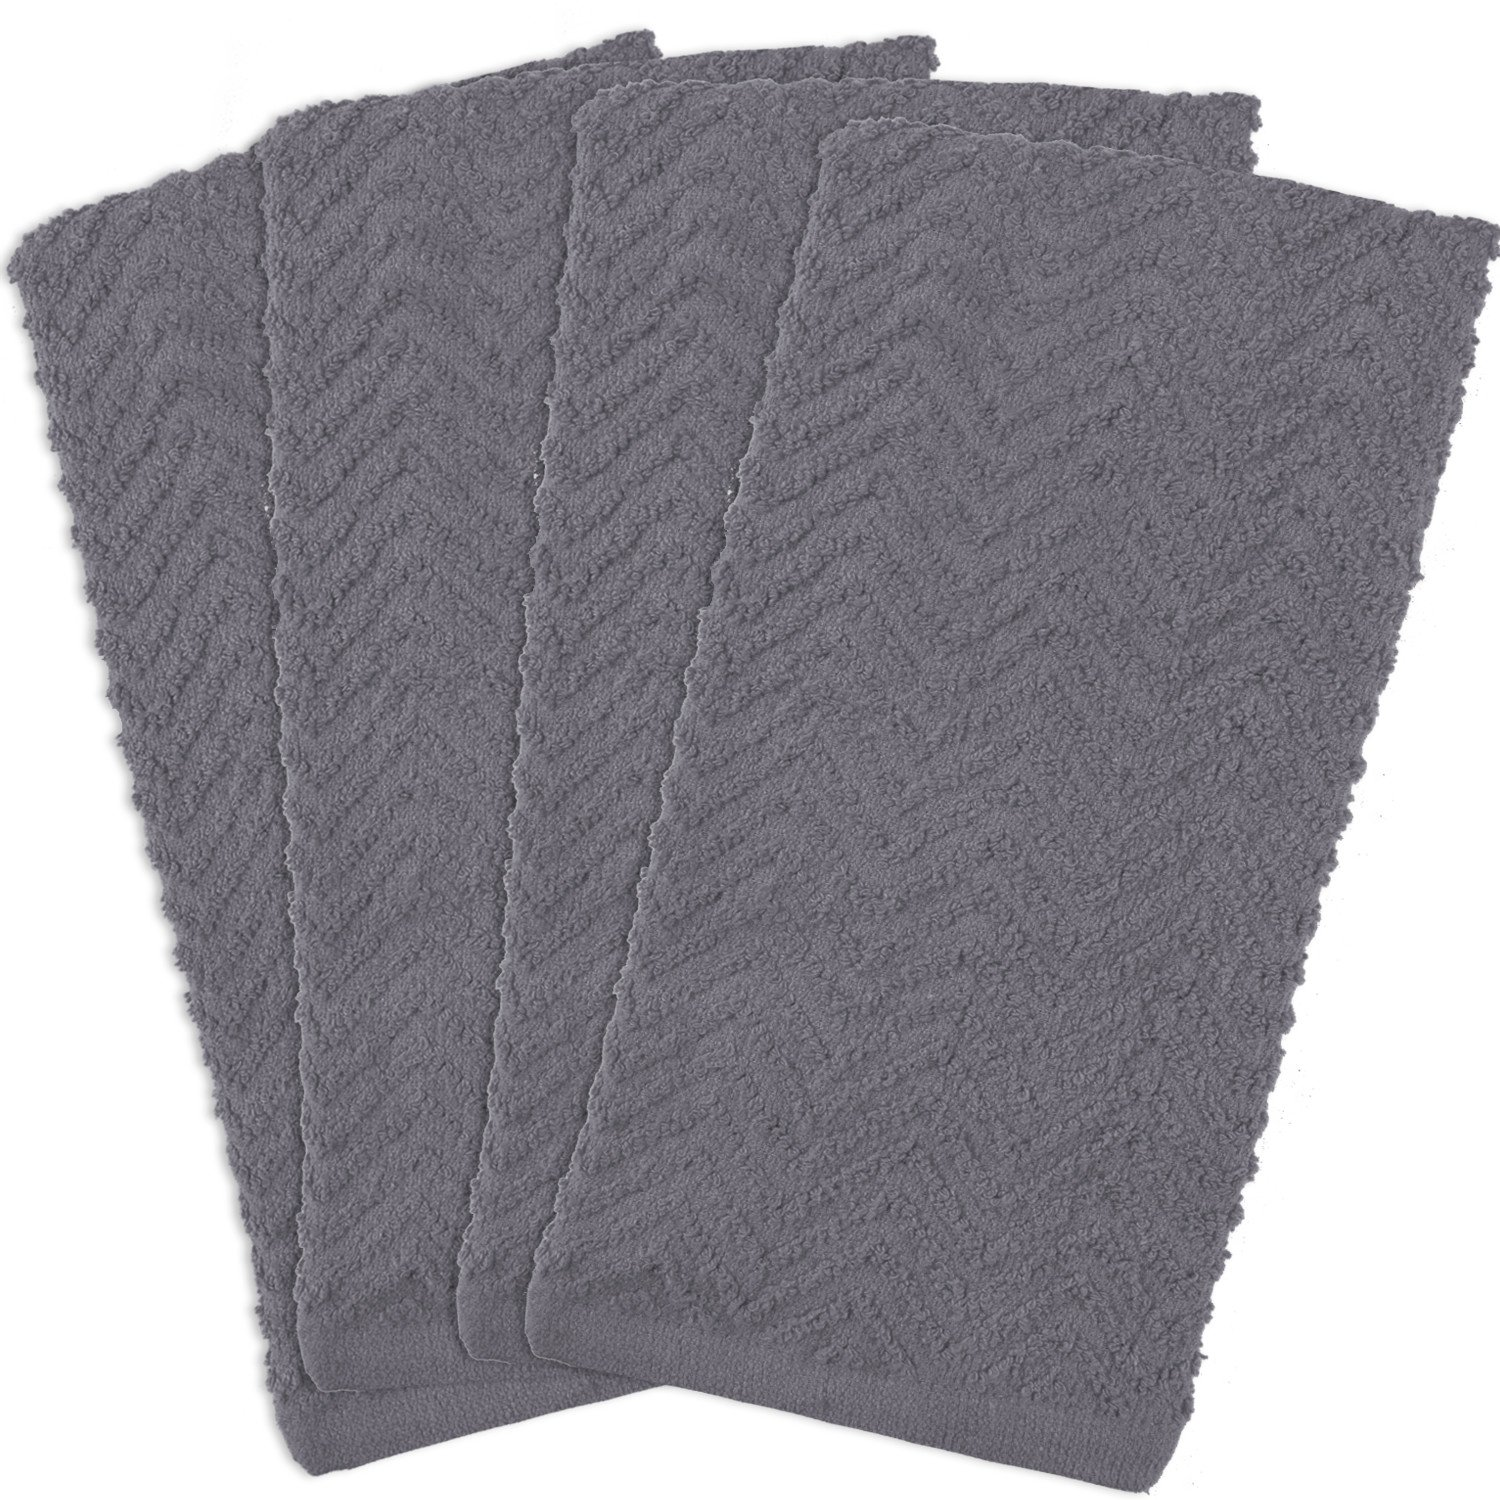 DII Cotton Zig Zag Weave Dish Towels, 16 x 28 Set of 4, Heavy Duty Kitchen Bar Mop for Drying & Cleaning-Gray